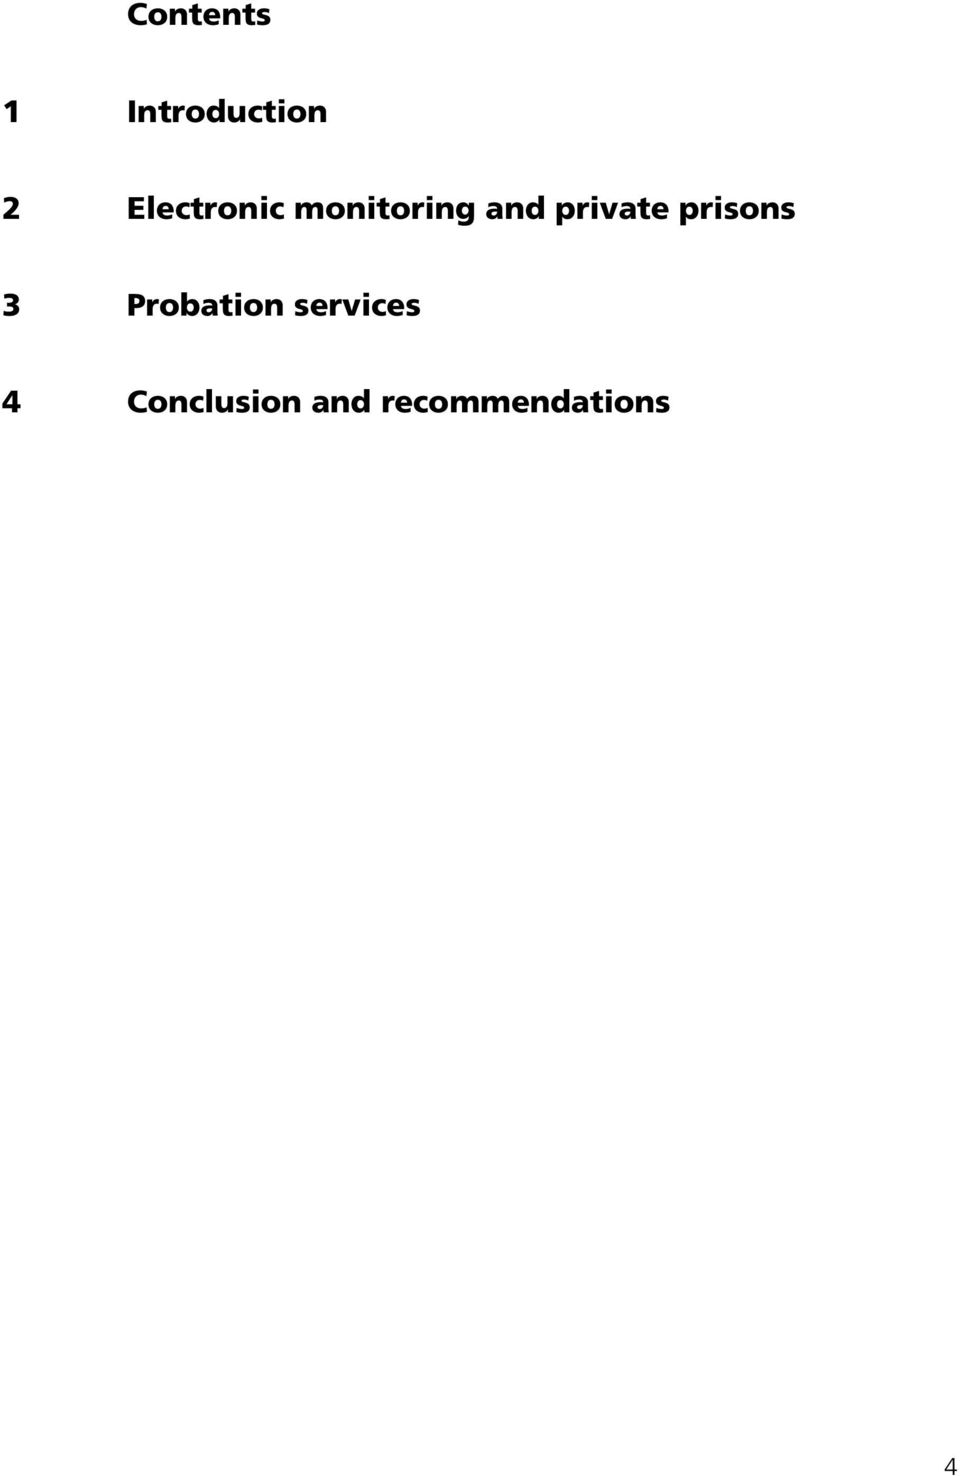 private prisons 3 Probation